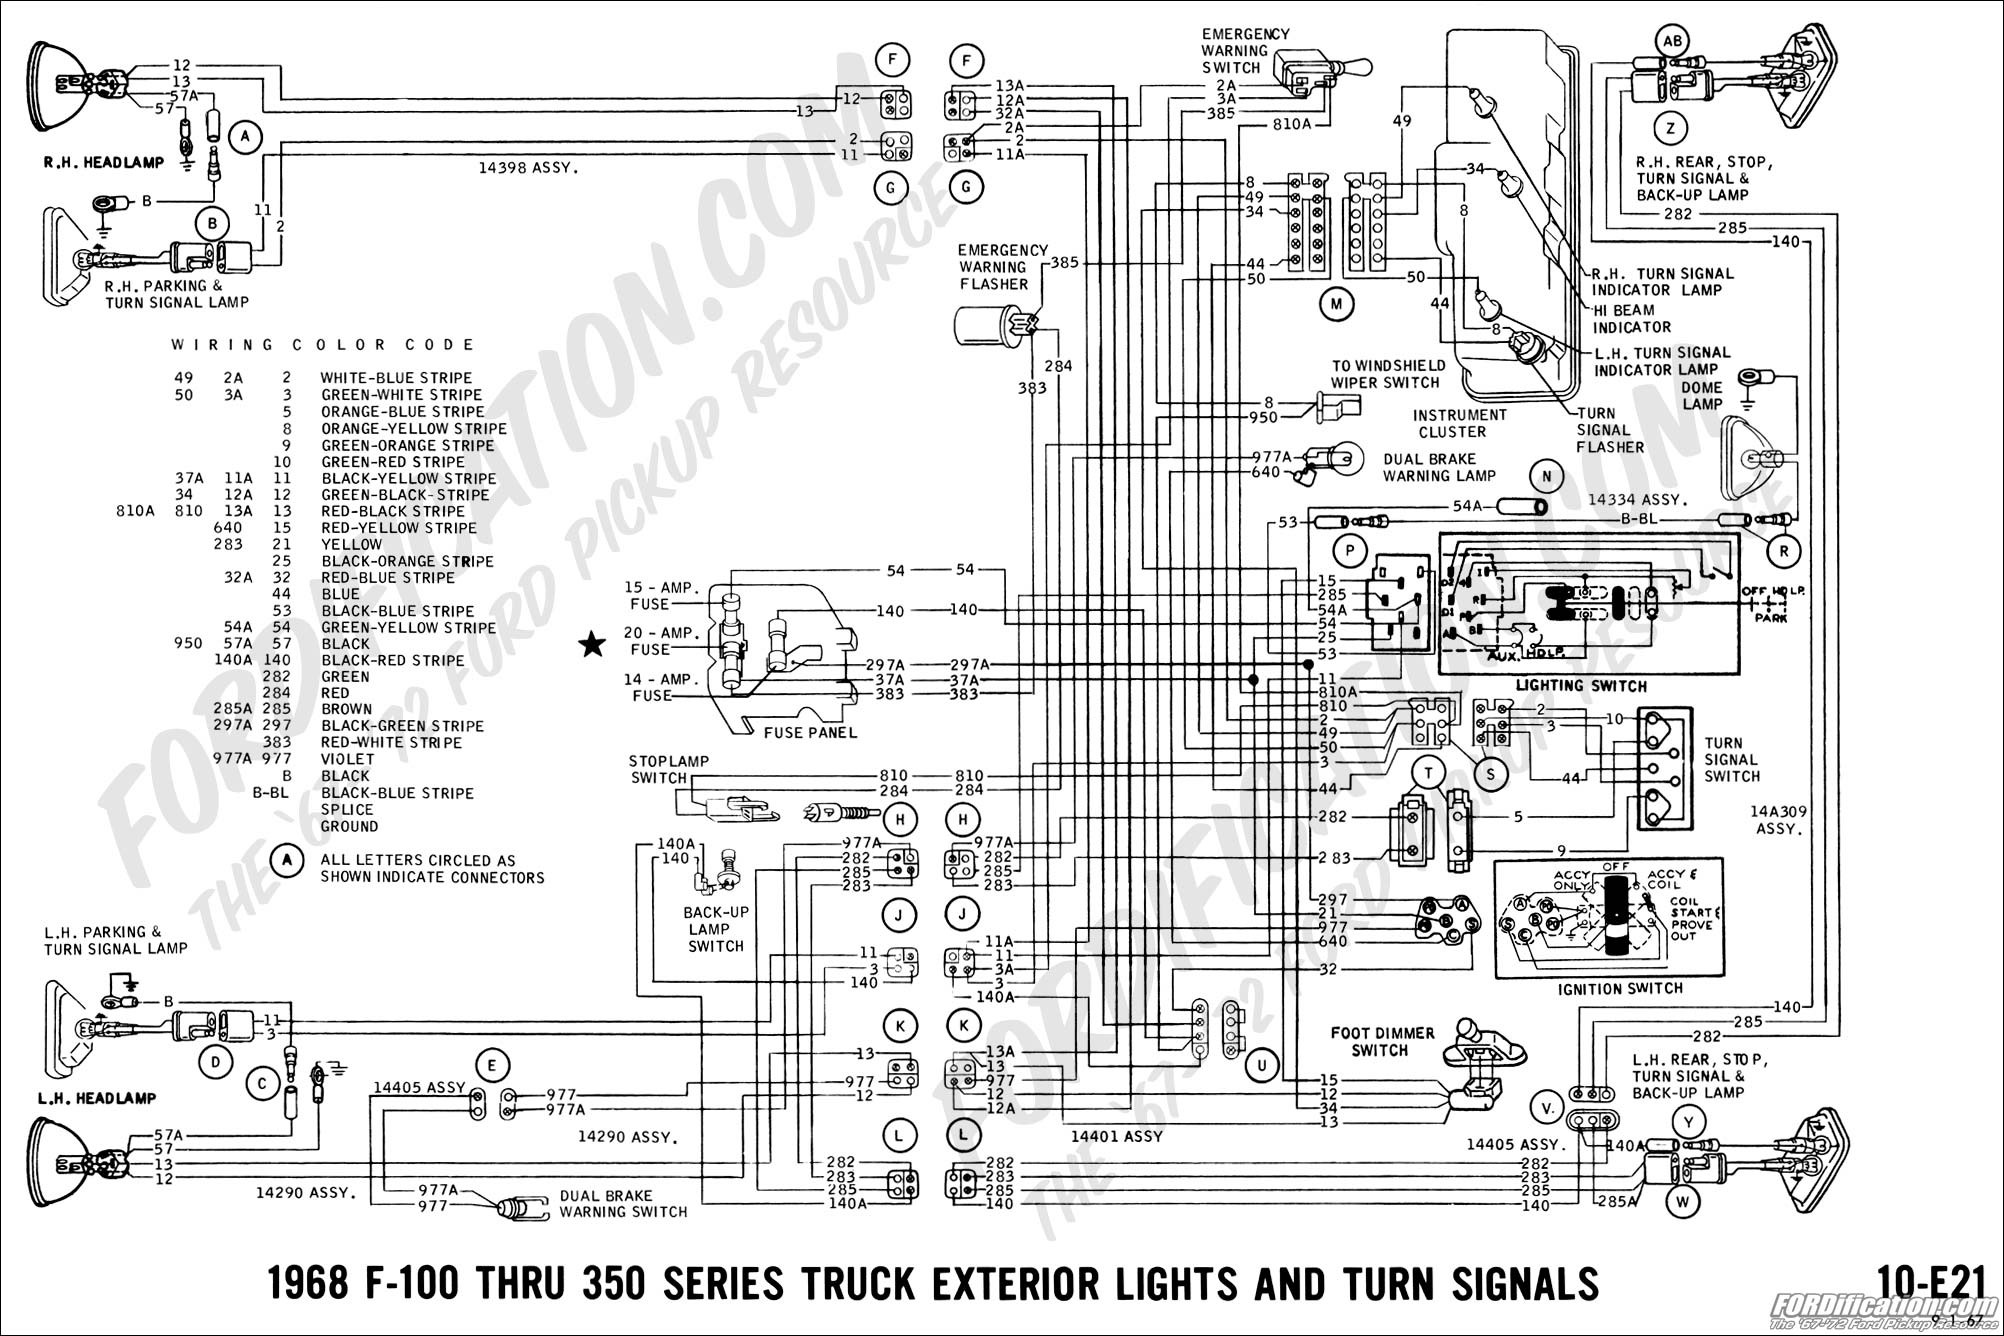 67 72 Chevy Truck Wiring Diagram 1968 Ford Ranger Solenoid Data Of